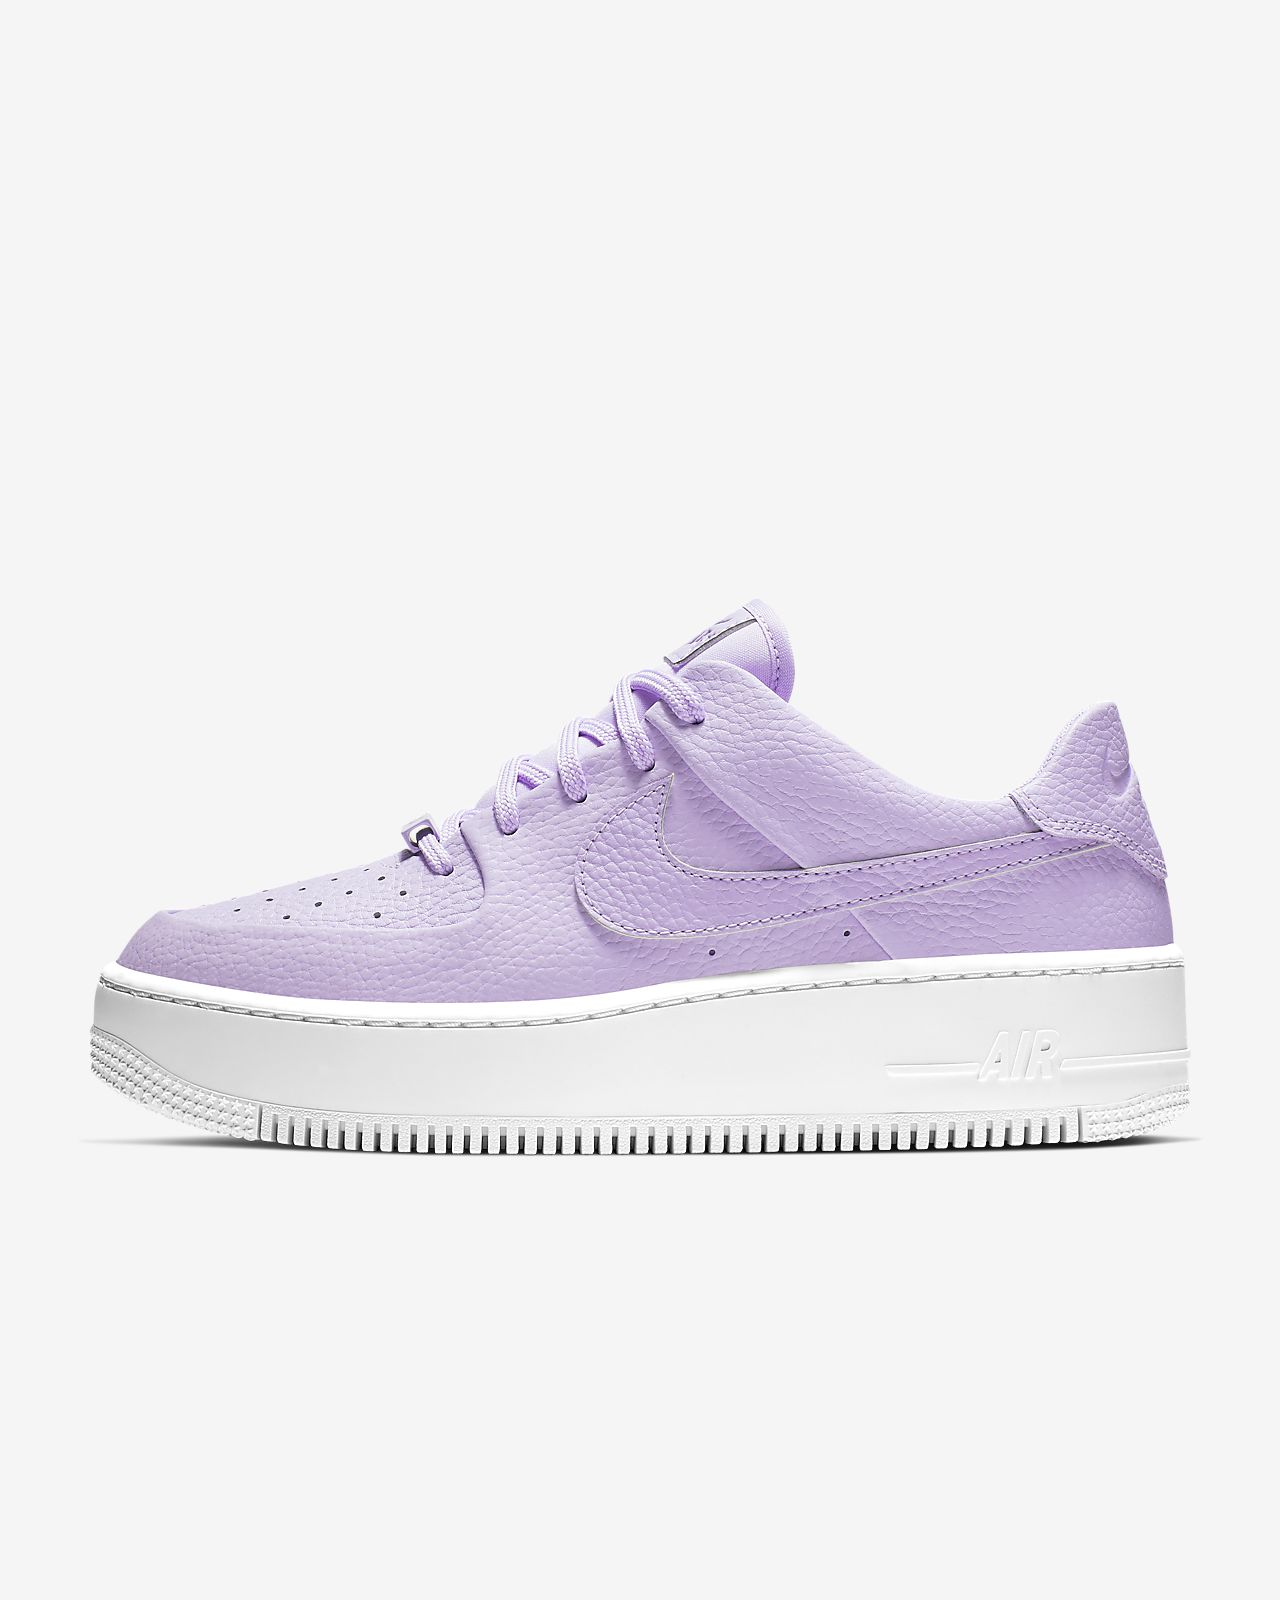 official photos 9e3fb ac9a2 ... Chaussure Nike Air Force 1 Sage Low pour Femme